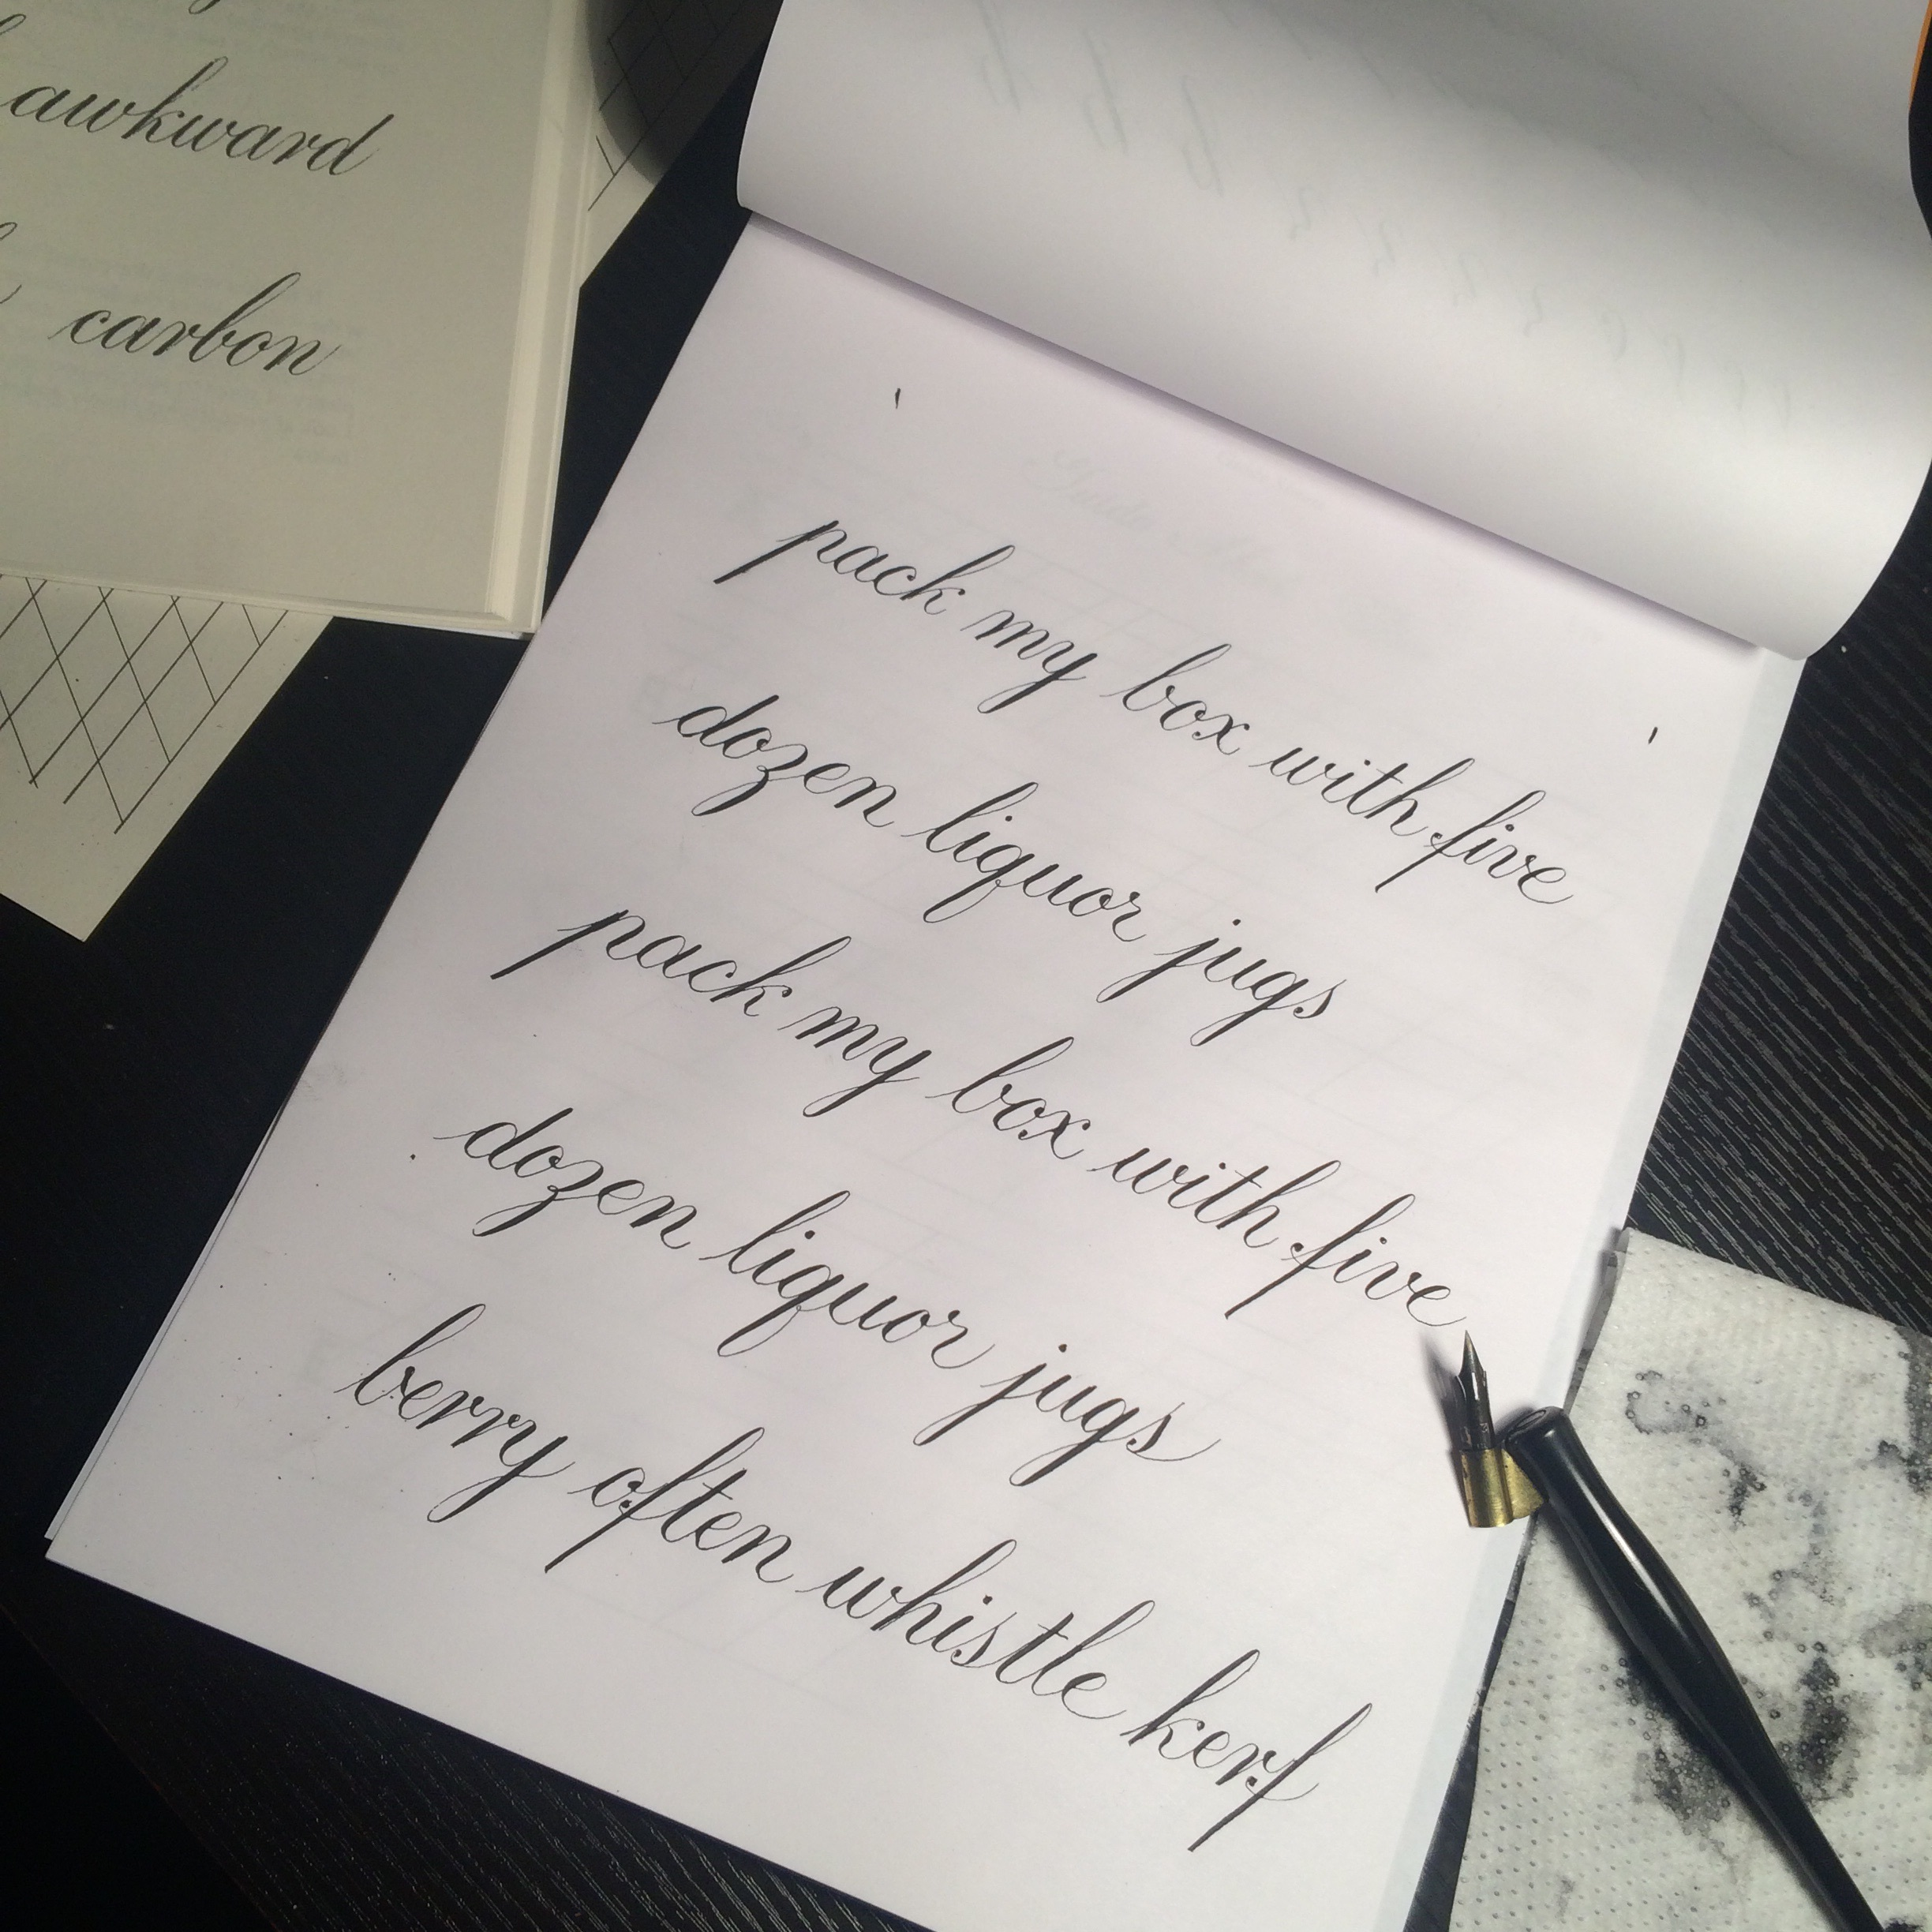 Hunt 22 nib and nonsense pangrams